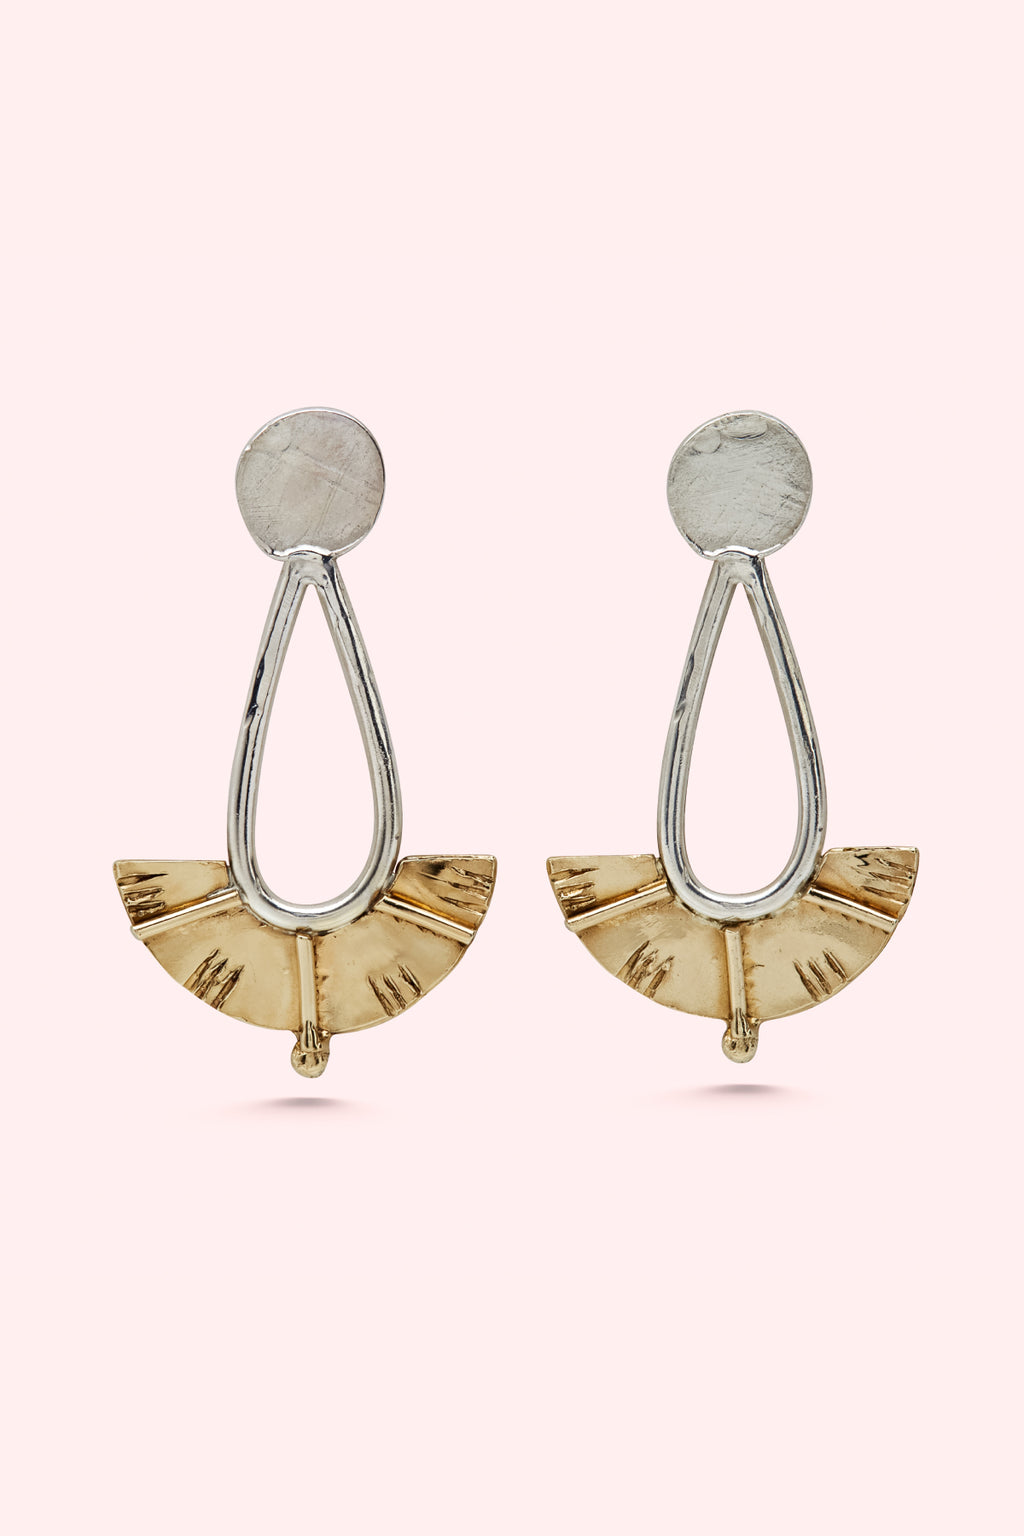 Silver and Brass Juno Drop Earrings Large-Meg Watson Jewellery-THE FASHION ADVOCATE-ethical sustainable Australian womens fashion online